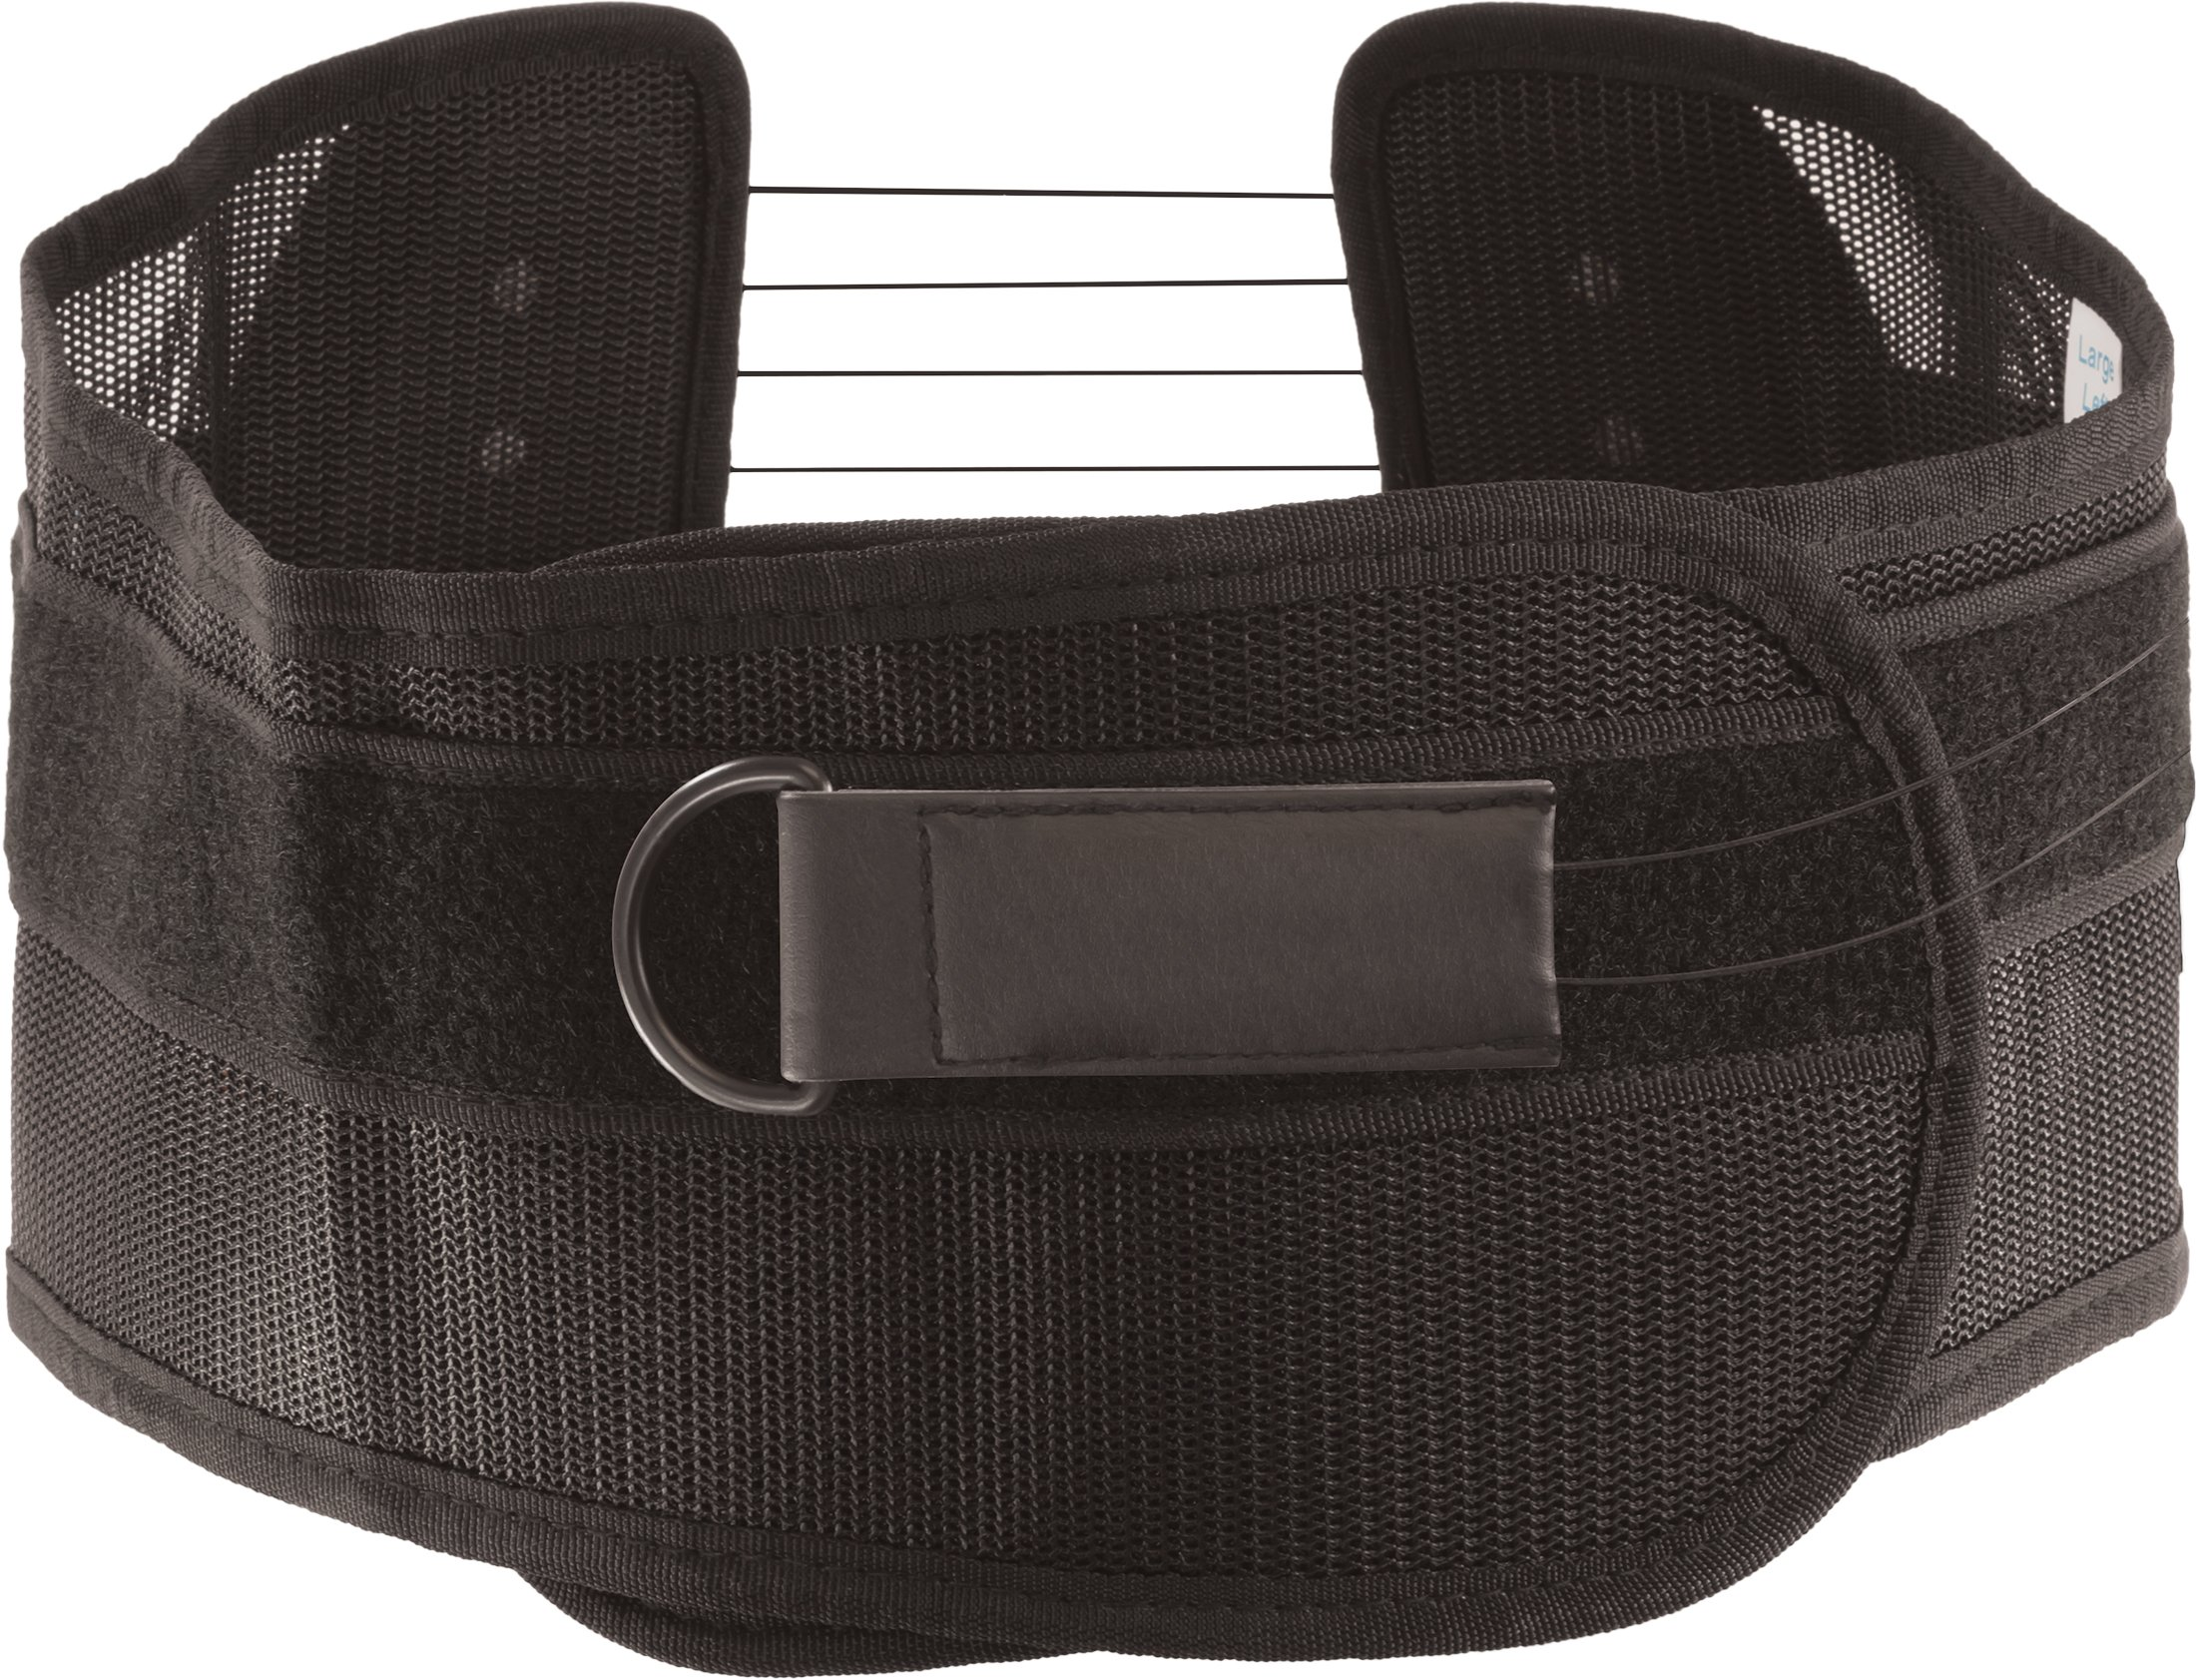 Ottobock The S.P.I.N.E. Spine Brace X-Large, Black, Delivers Compression to Support, Relieve and Prevent Minor to Extreme Lower Back Pain & Spine Pressure